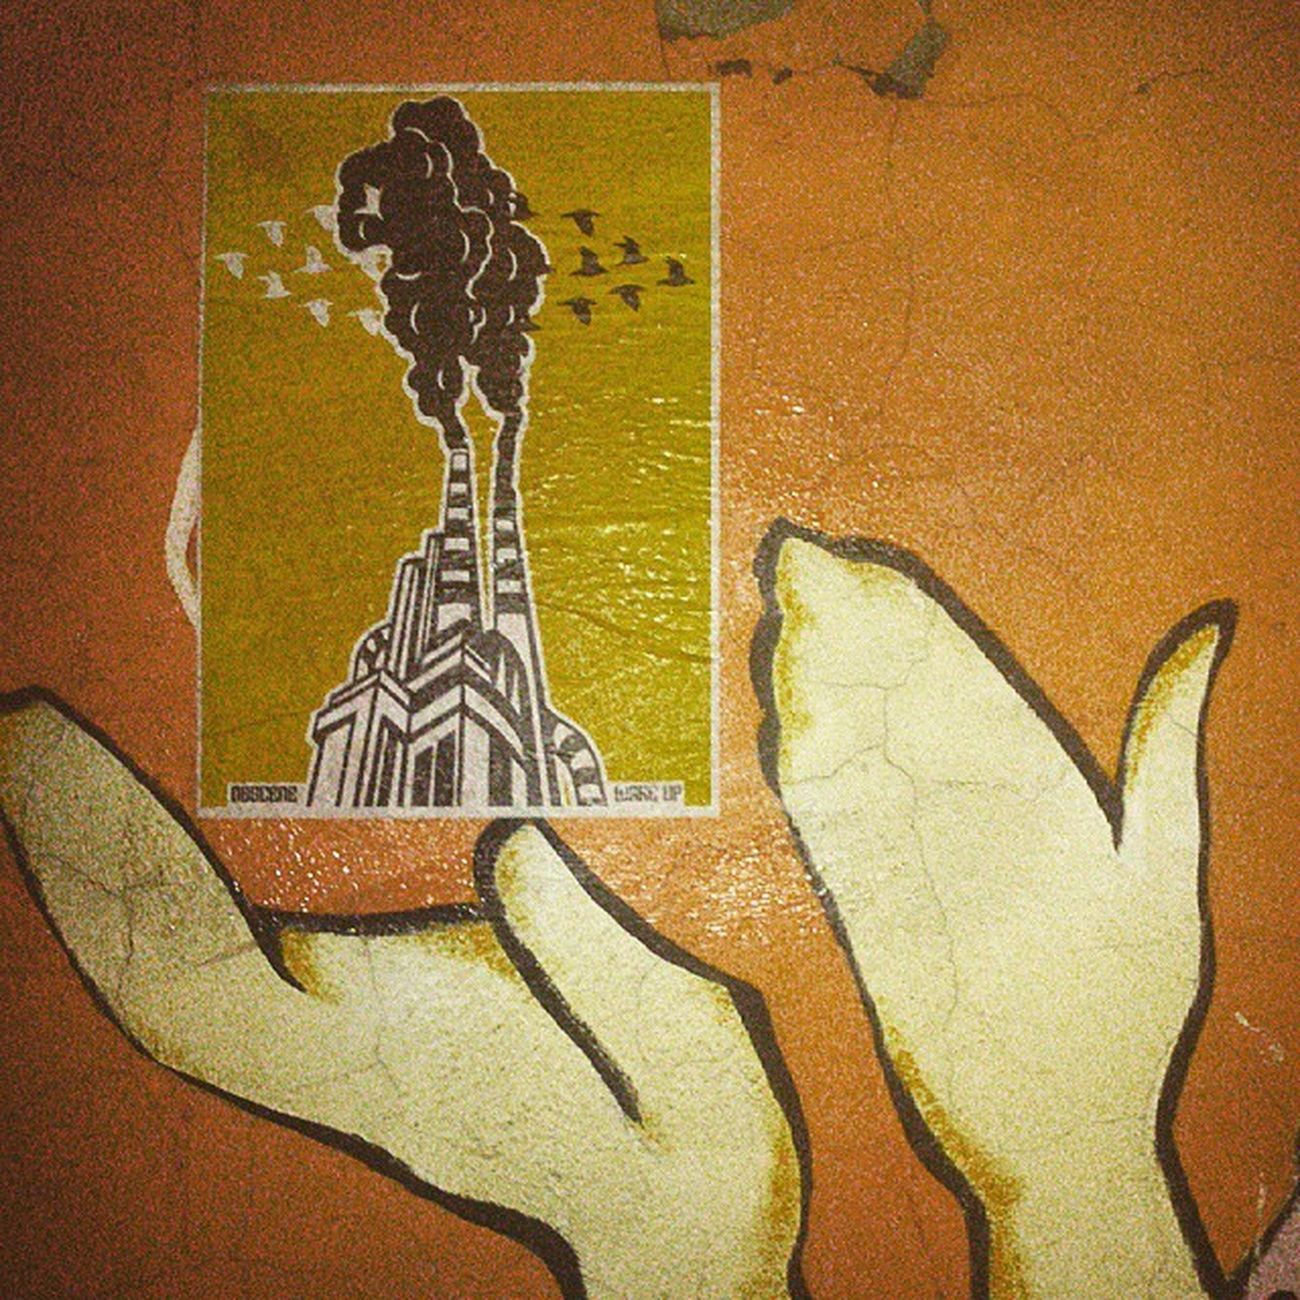 Here i represent you my cause. Streetart Streets Ob5cene Pasteup Wheatpasteart Wheatpaste Wheatglue Airpollution Rightnow Artofthenight mashhad Mashhadart Streetart_mashhad